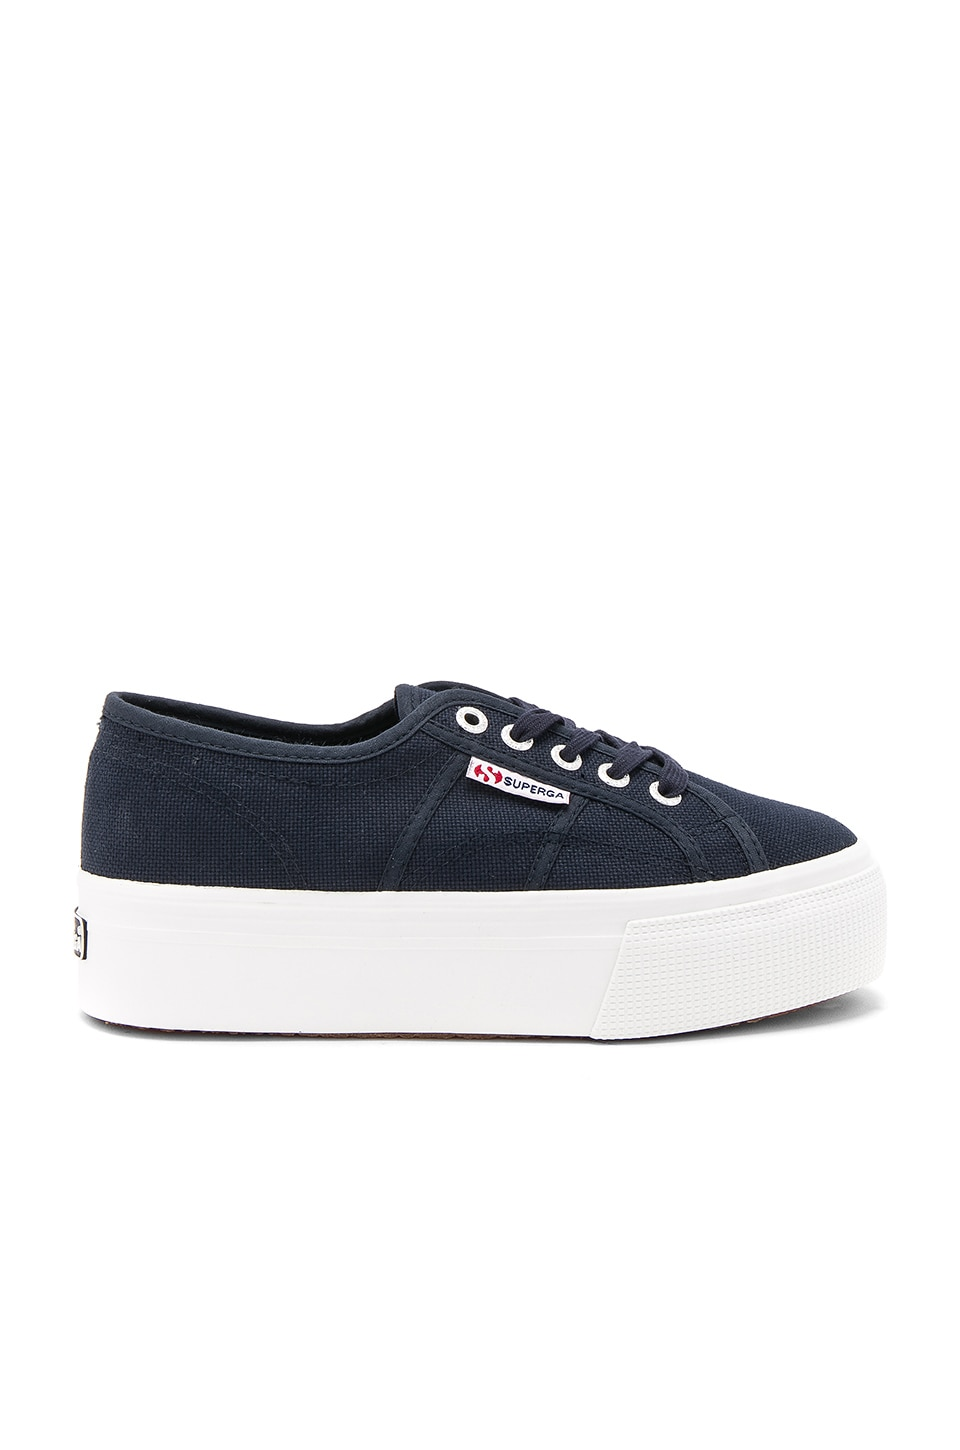 2790 Platform Sneaker by Superga